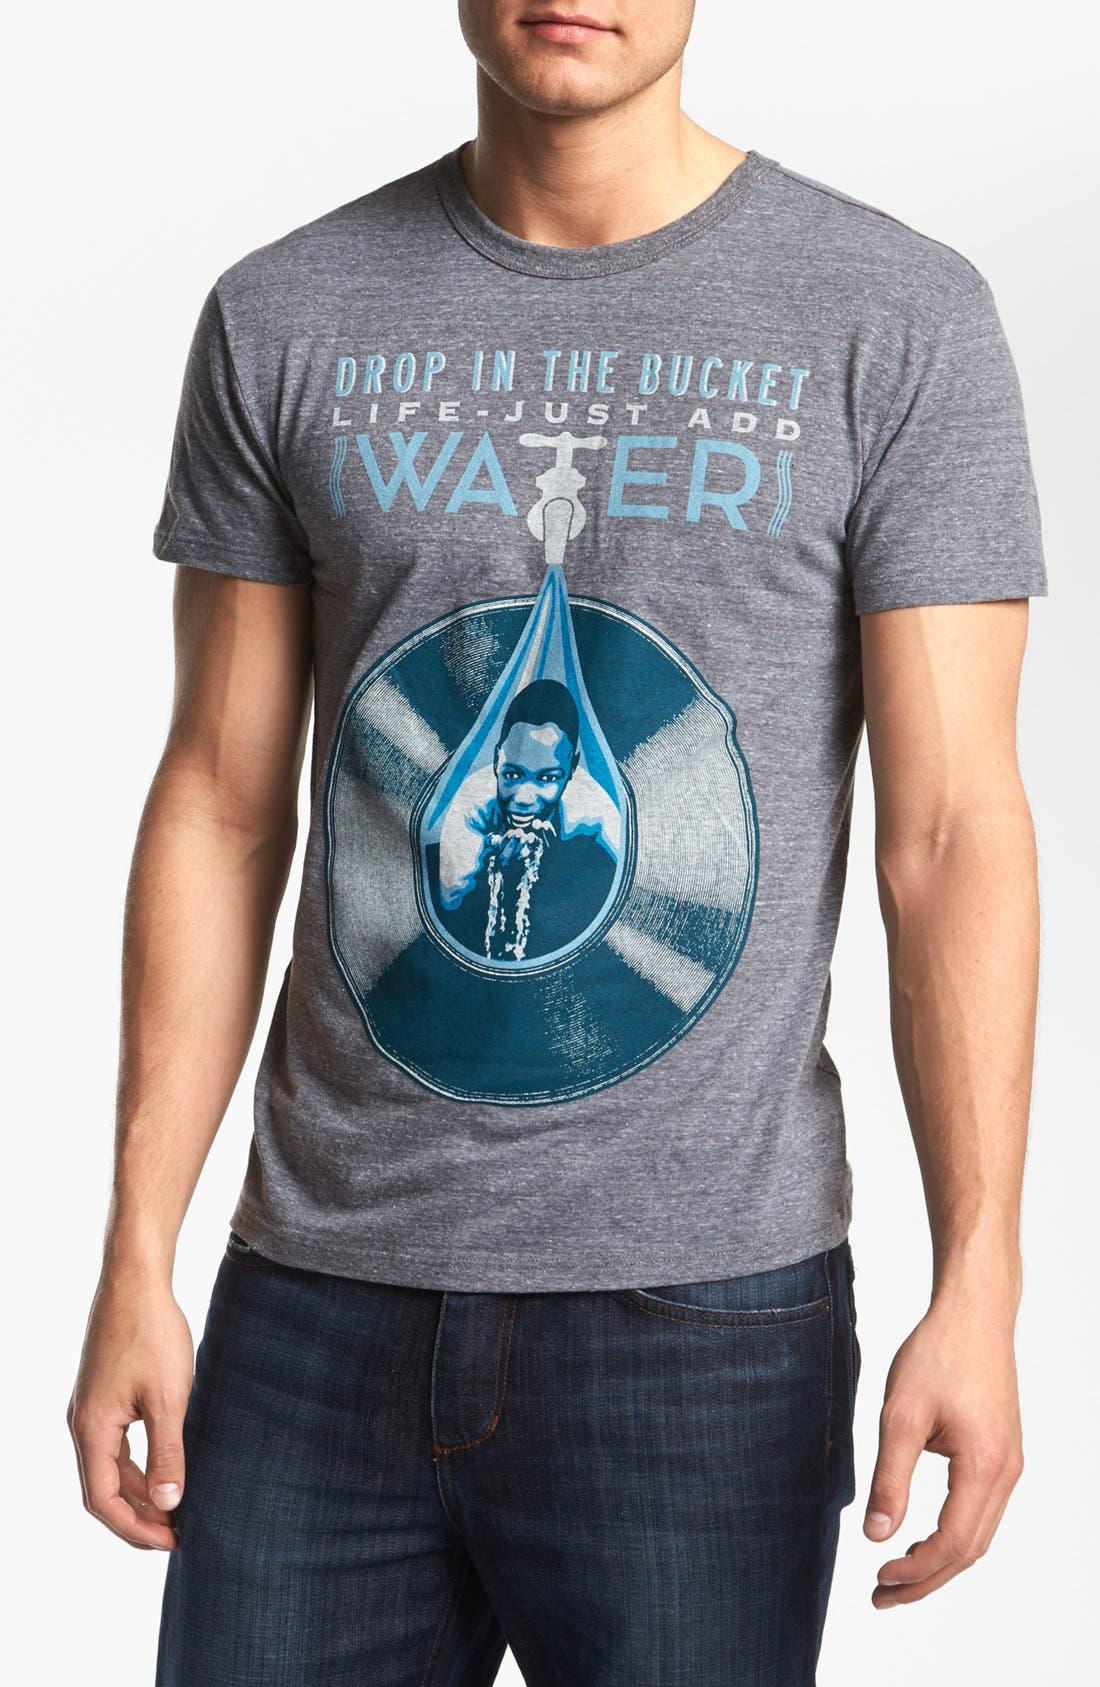 Alternate Image 1 Selected - Obey 'Drop in the Bucket' T-Shirt